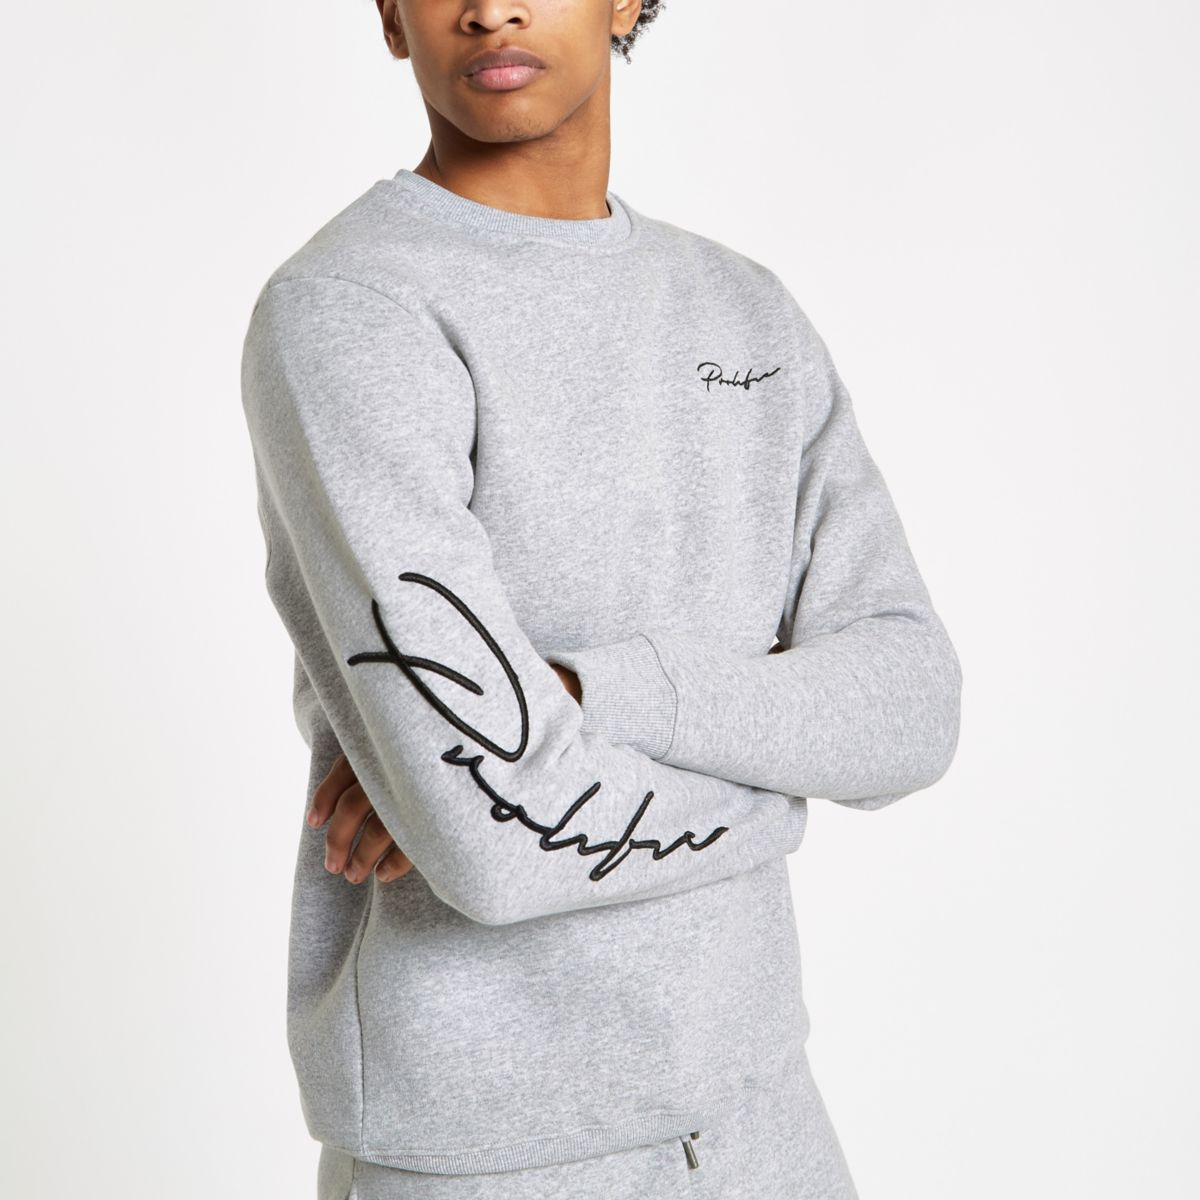 Grey marl 'Prolific' slim fit sweatshirt